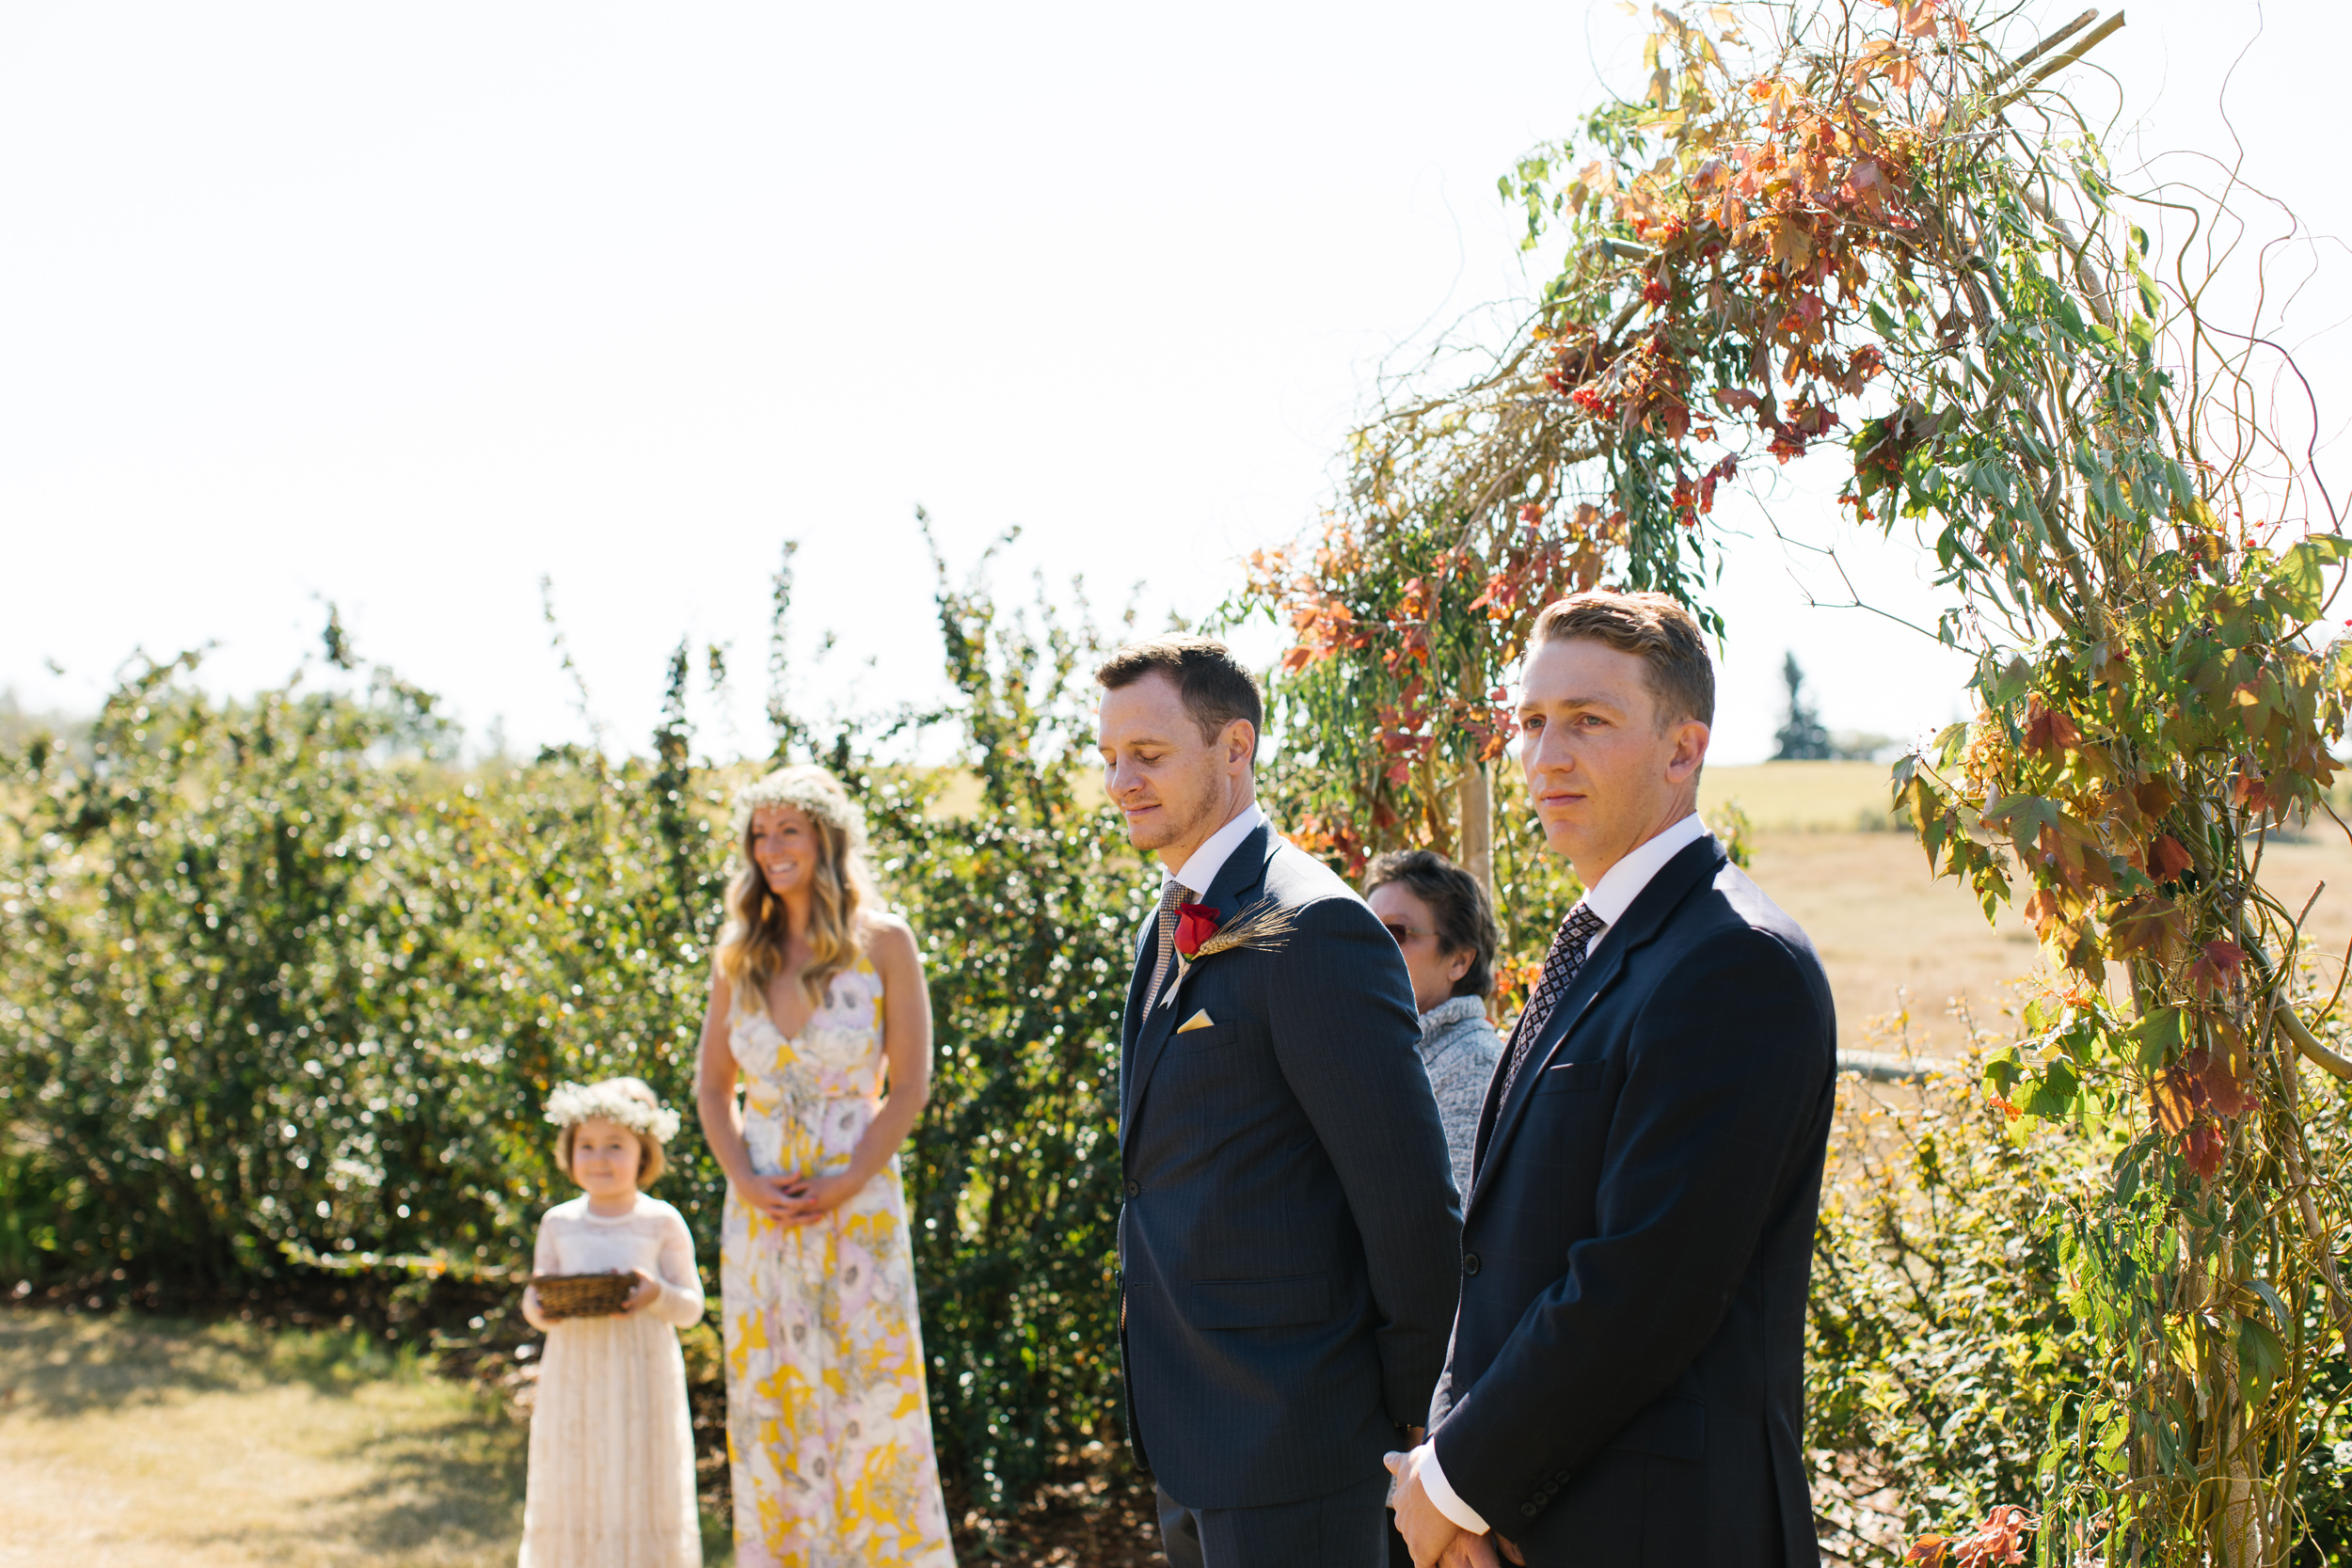 Calgary_Intimate_Backyard_Wedding0007.jpg